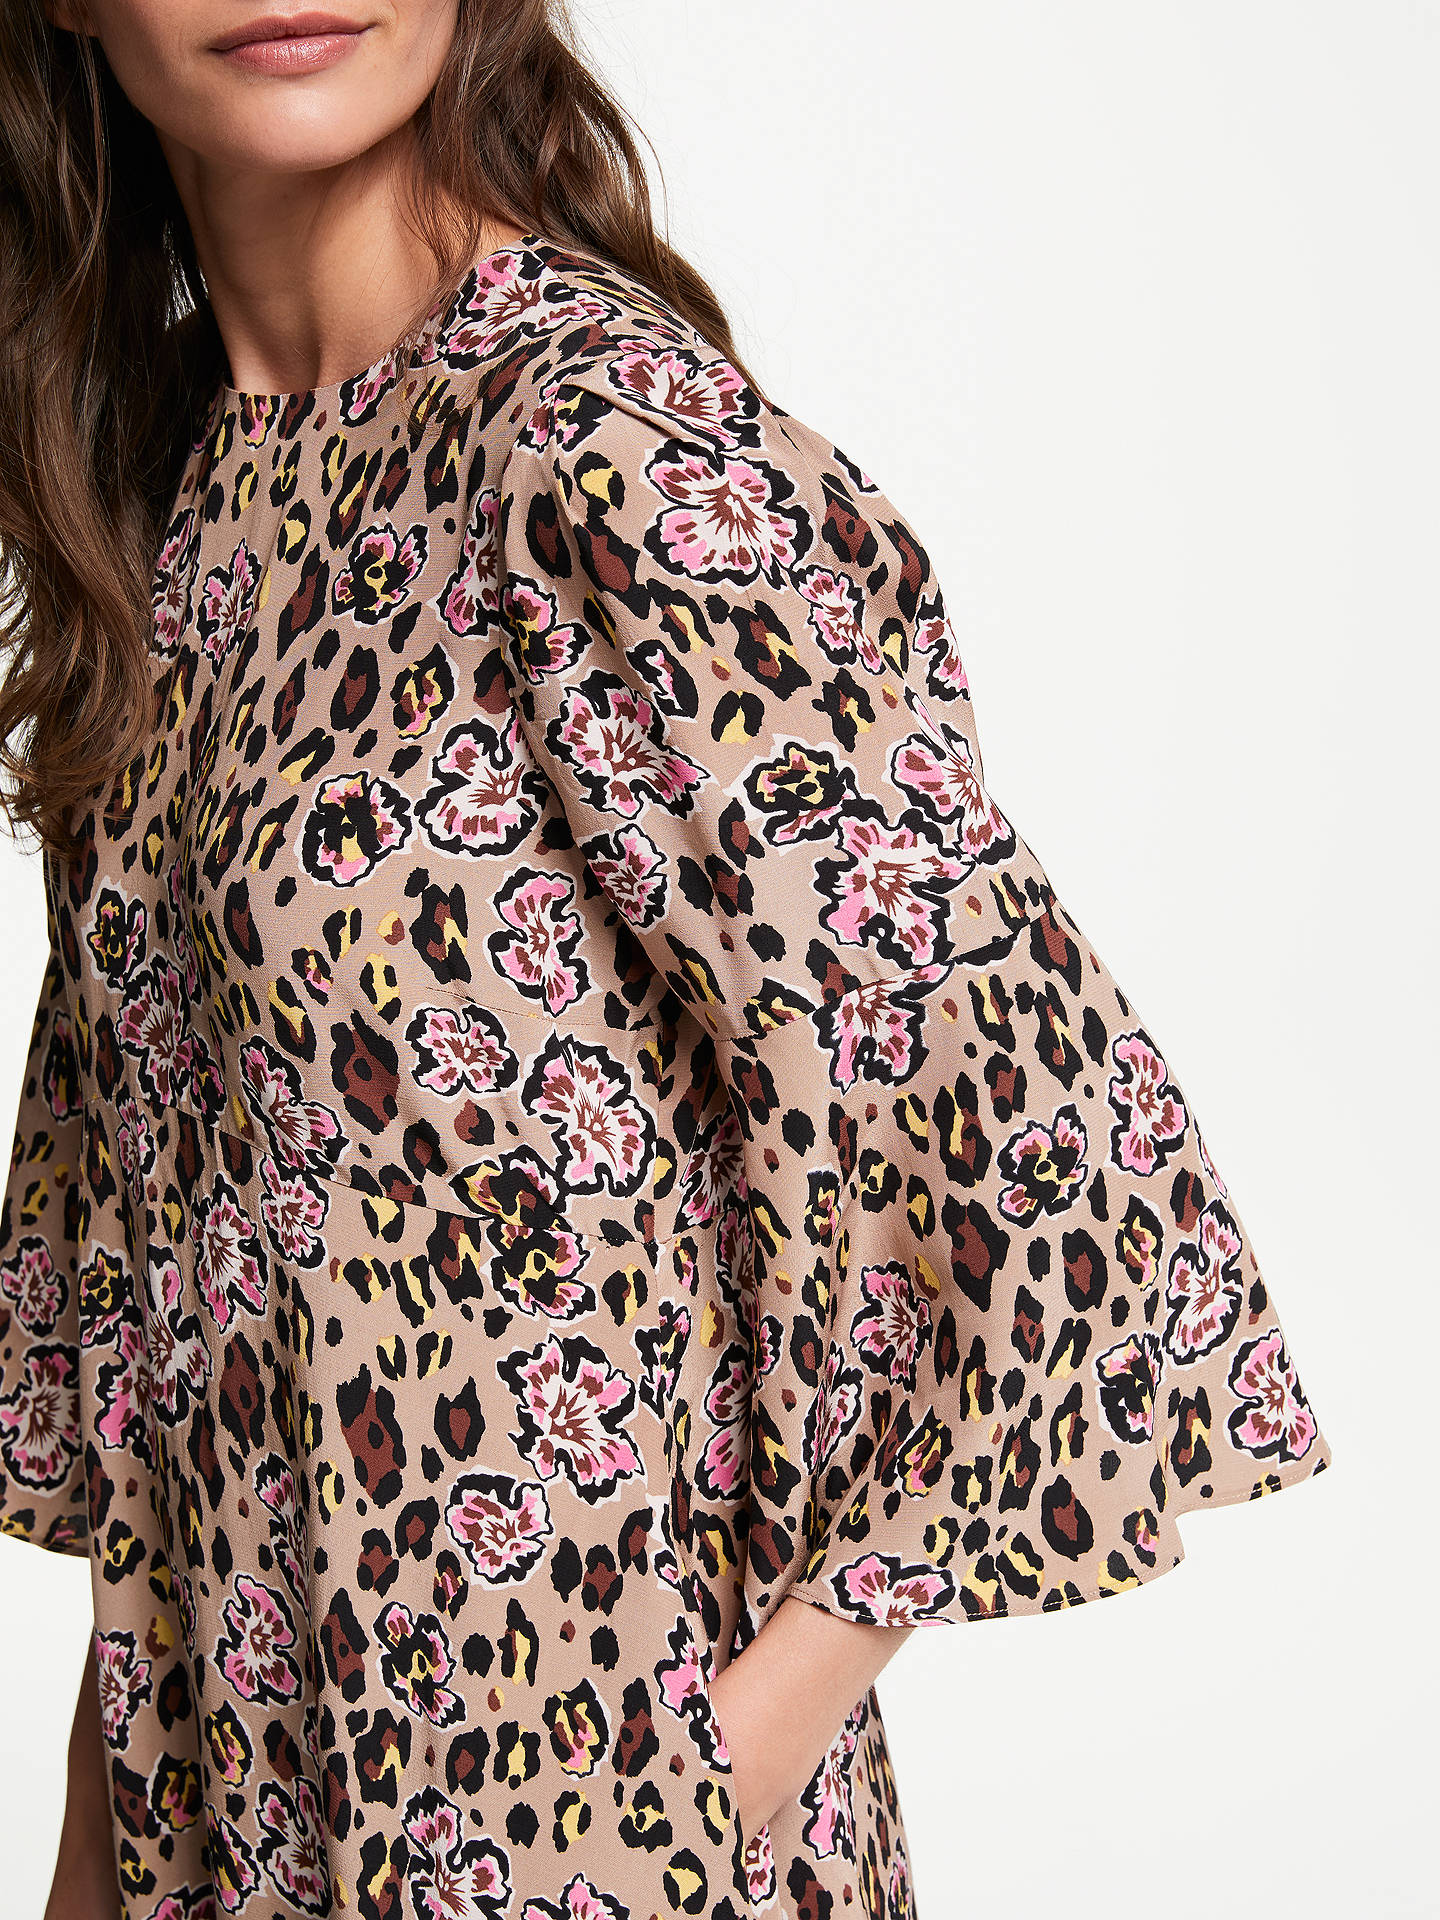 Buy Somerset by Alice Temperley Leopard Floral Midi Dress, Black/Multi, 8 Online at johnlewis.com